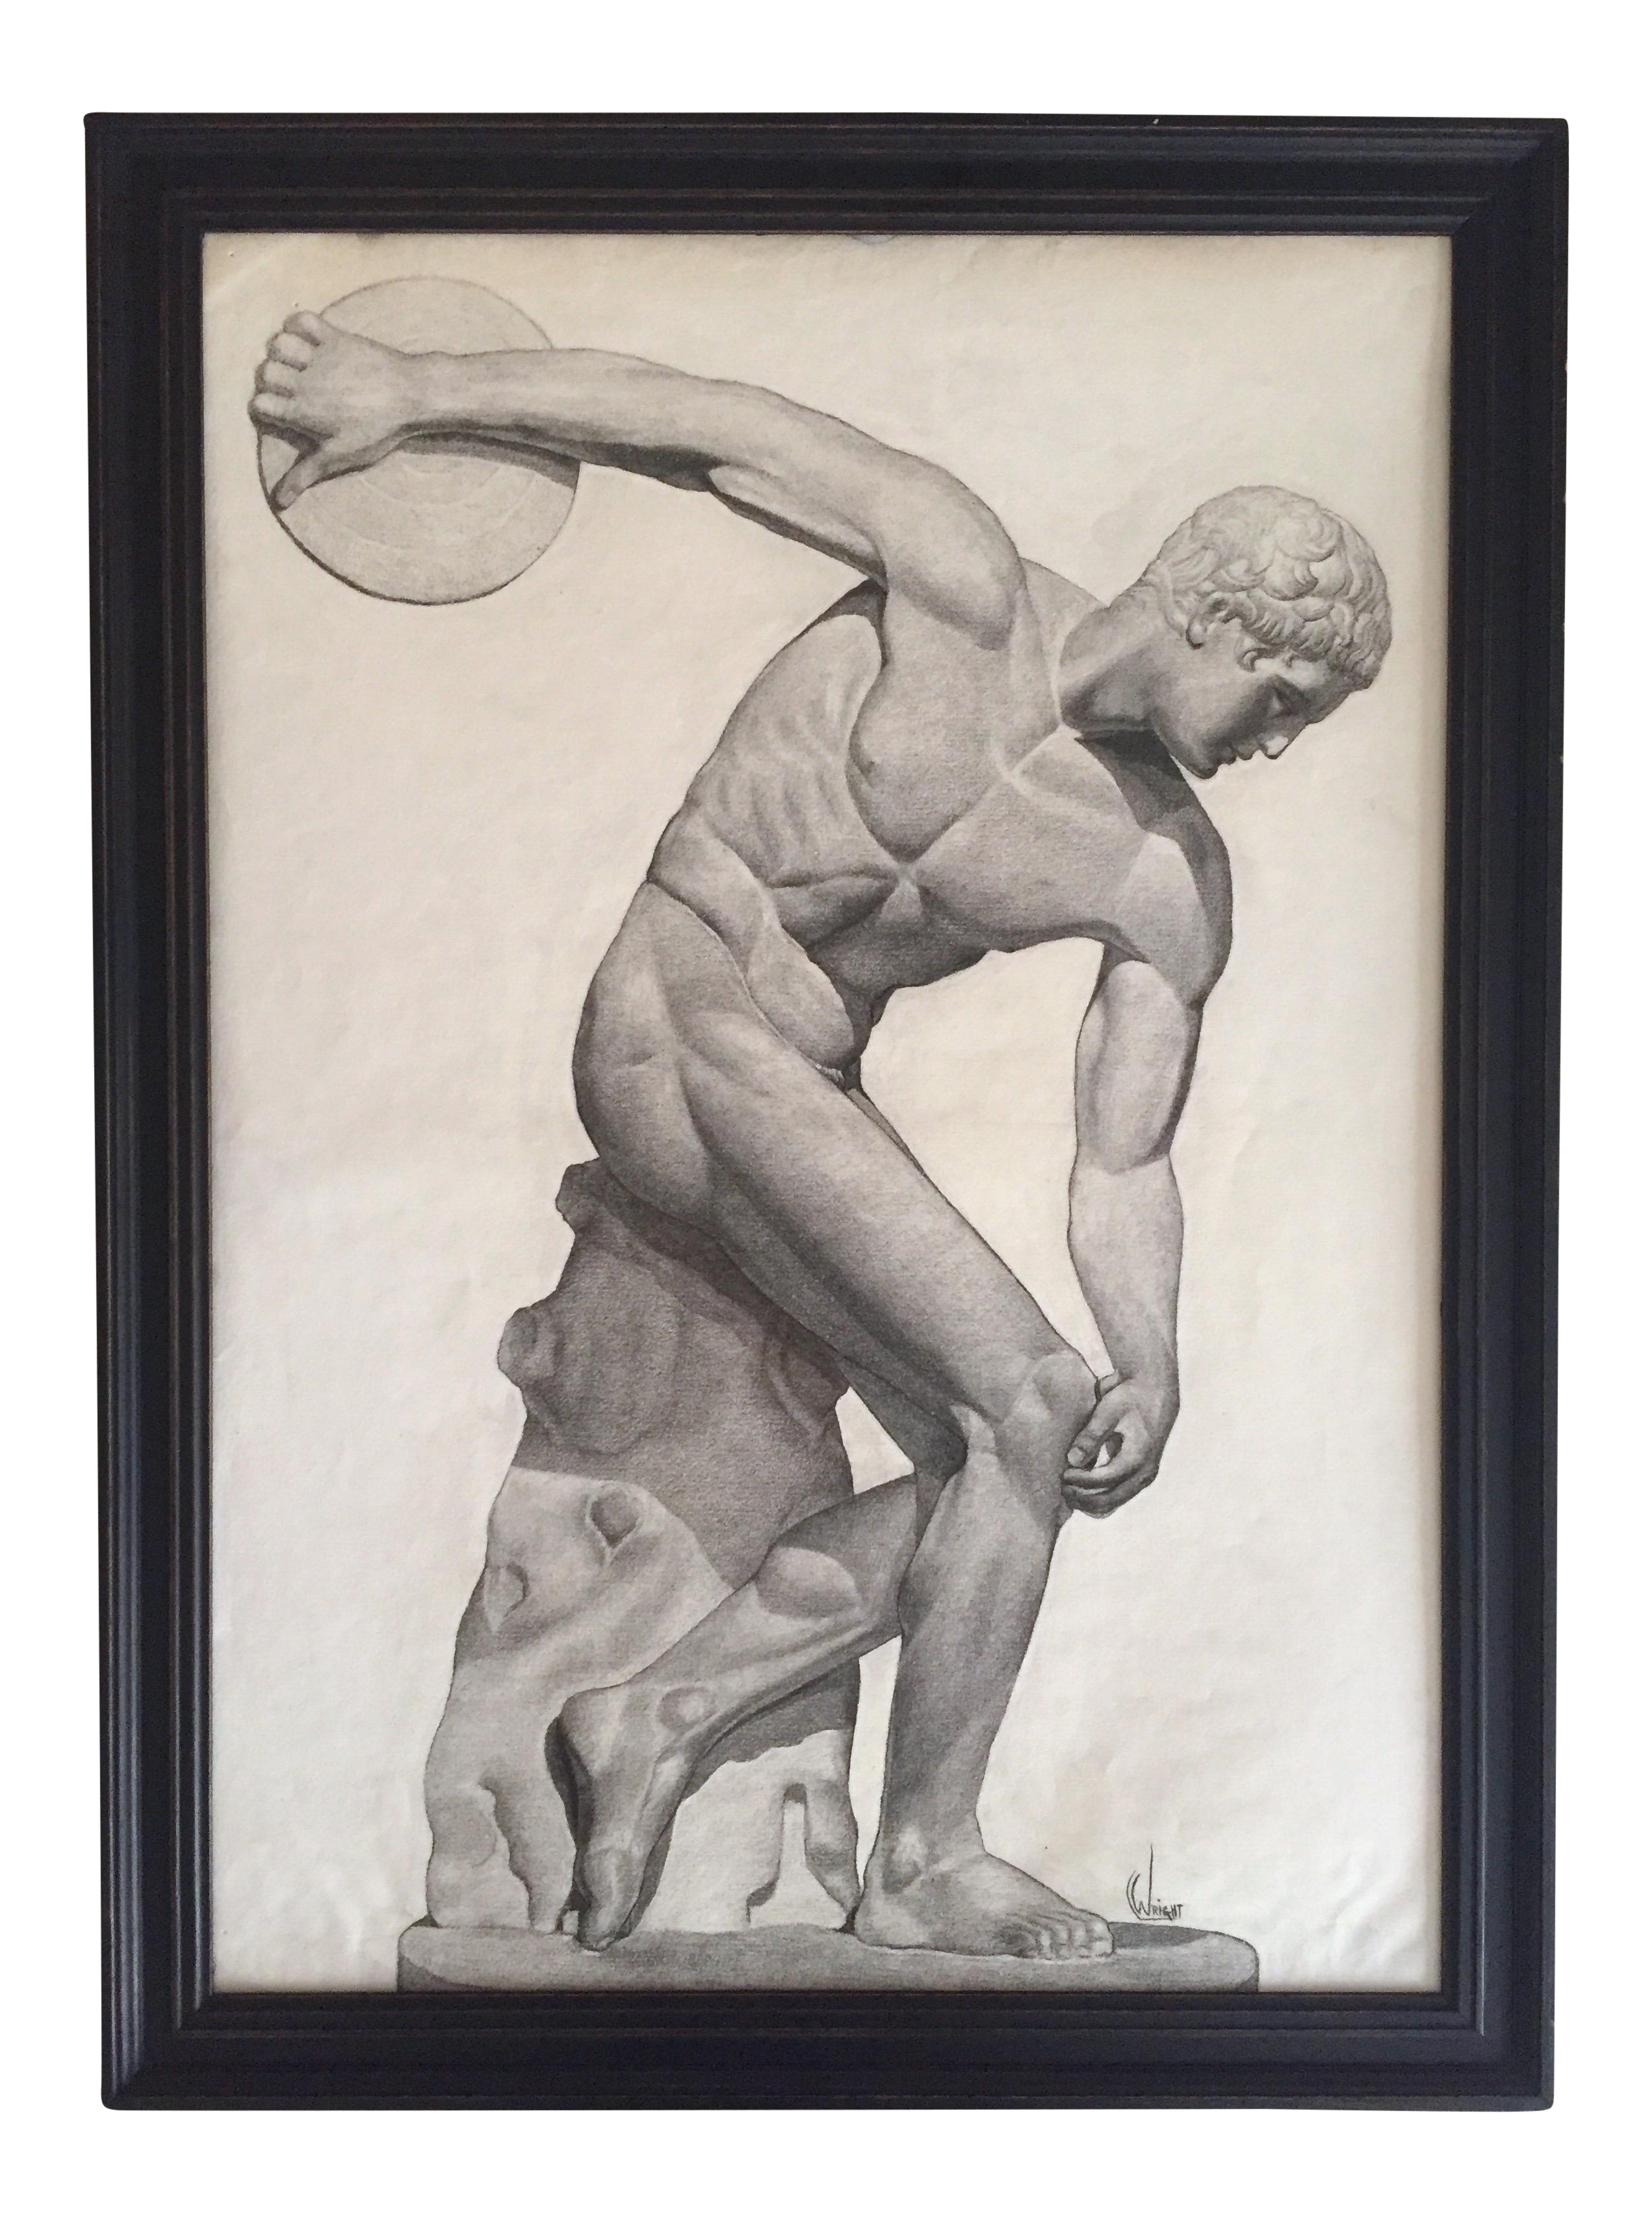 Kinetic drawing charcoal. Vintage s discus thrower